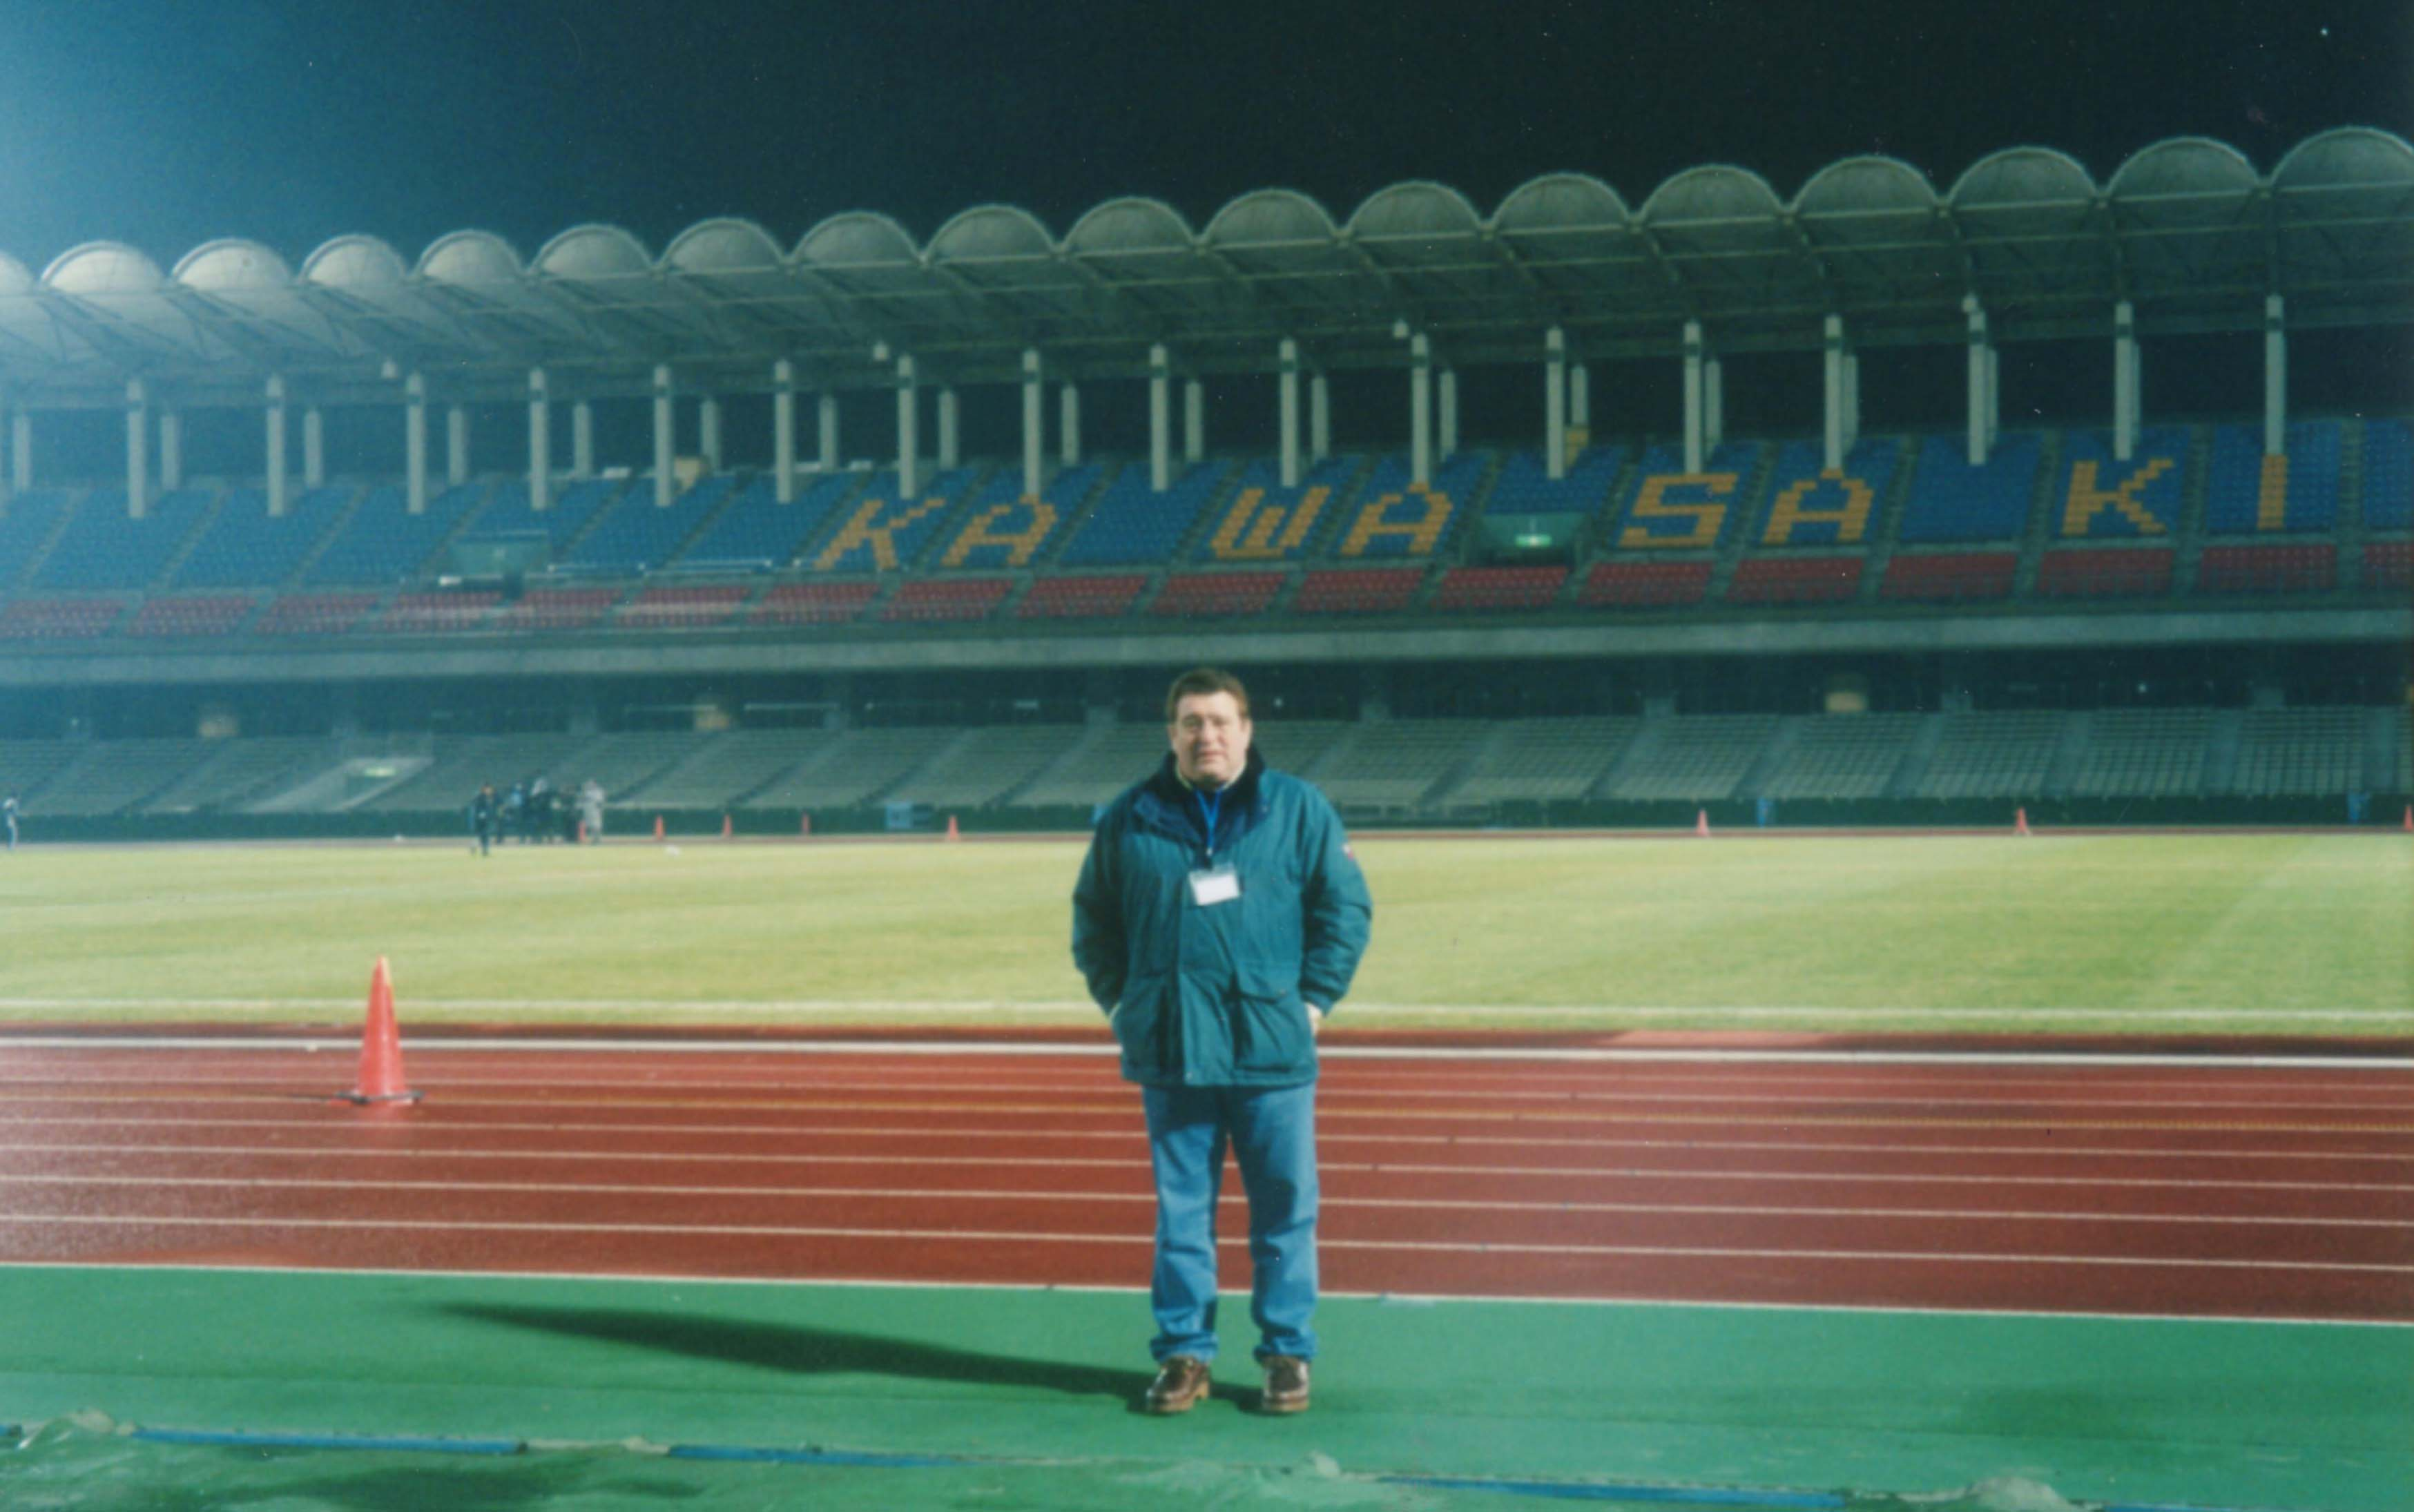 En el Estadio Kawasaki en Yokohama, Copa Intercontinental 2002.